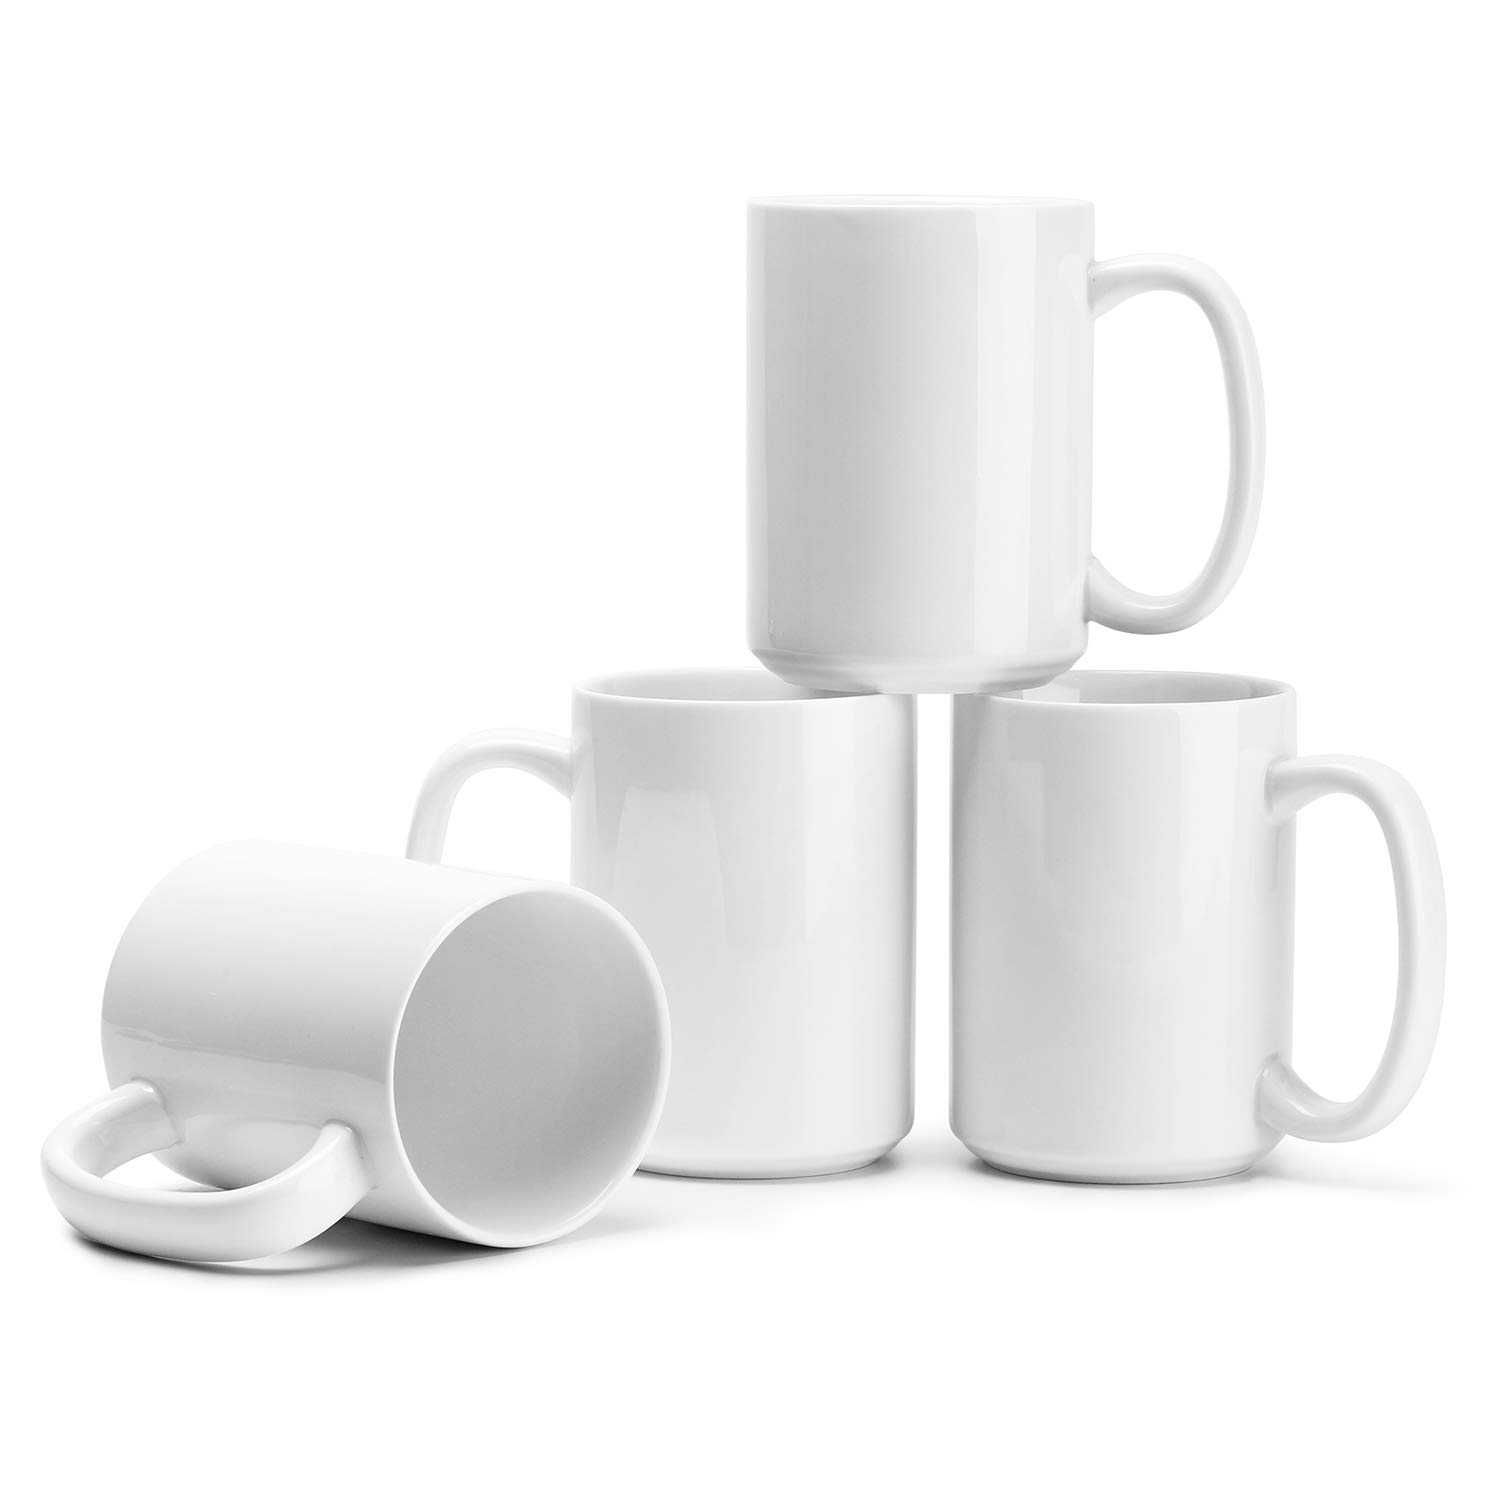 Teocera Porcelain Mugs, Coffee Mugs Set - 15 Ounces for Coffee, Cocoa, Tea - Large Handle - Set of 4, White